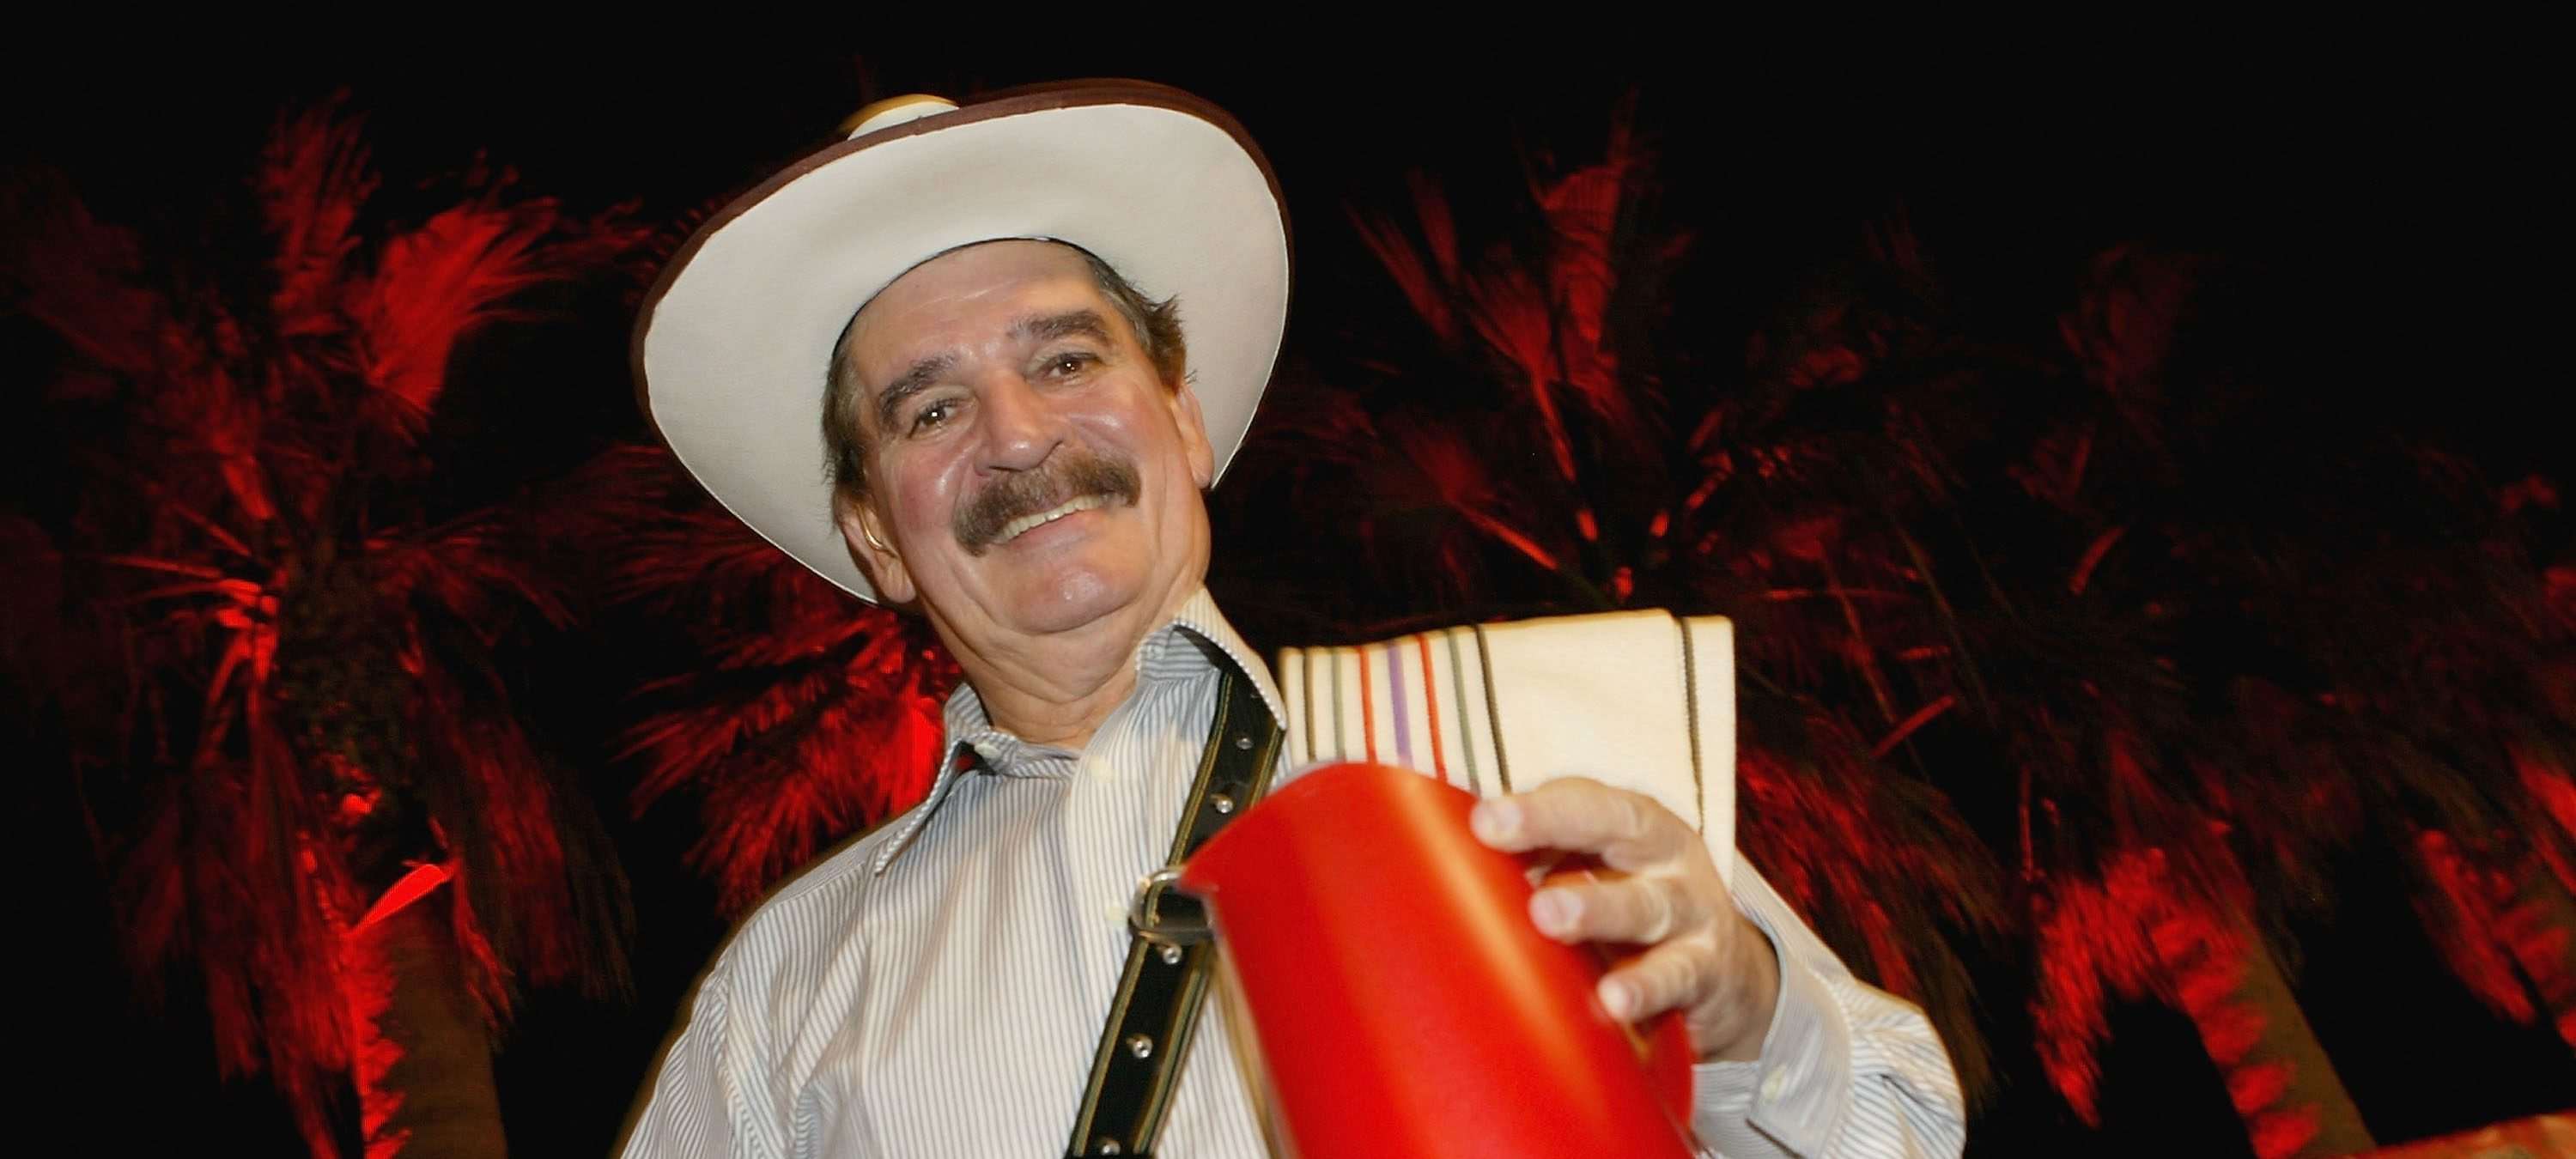 Carlos Sánchez, the Actor Who Portrayed Juan Valdez for Nearly 40 Years, Has Died